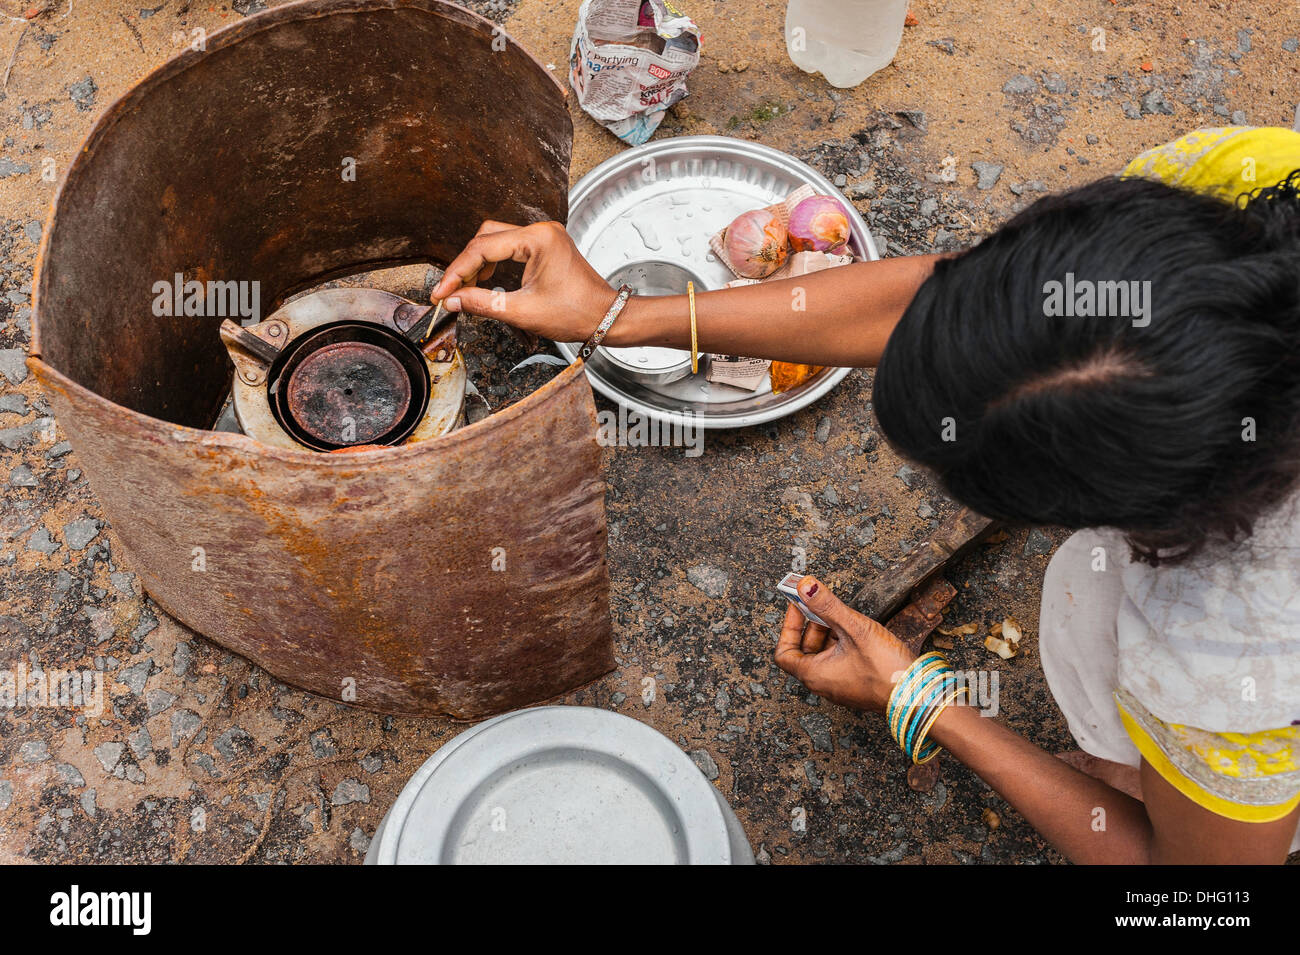 A street dweller prepares to cook a simple meal using primus stove near Kalighat, Kolkata, India. - Stock Image